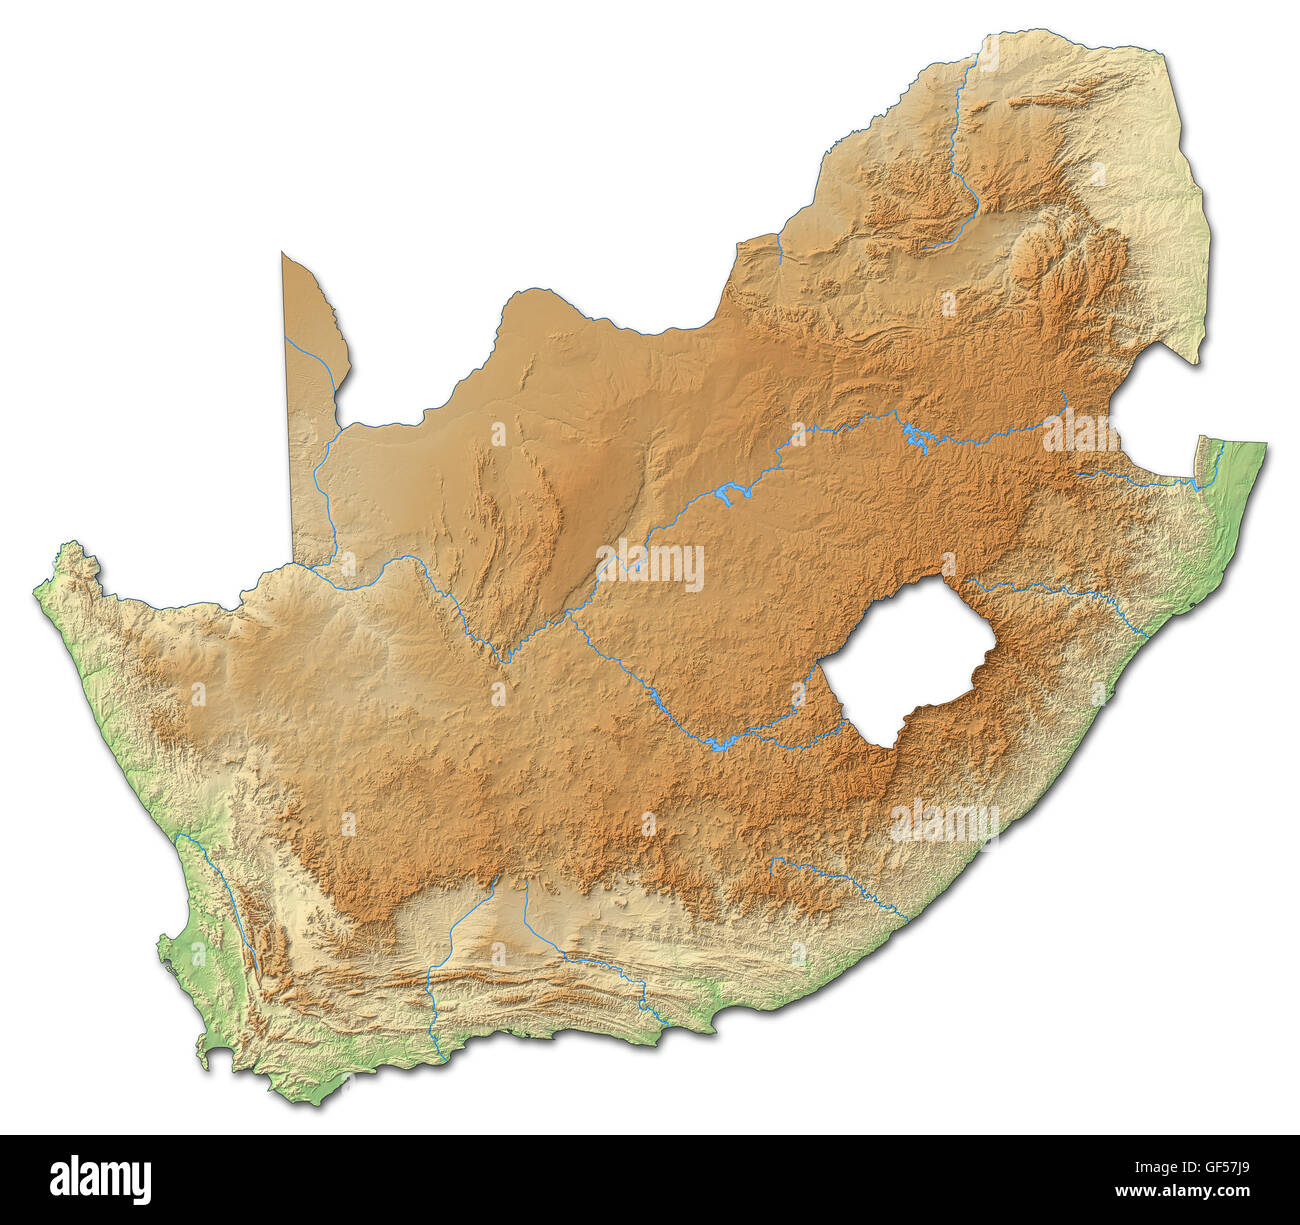 Relief map of South Africa with shaded relief. - Stock Image